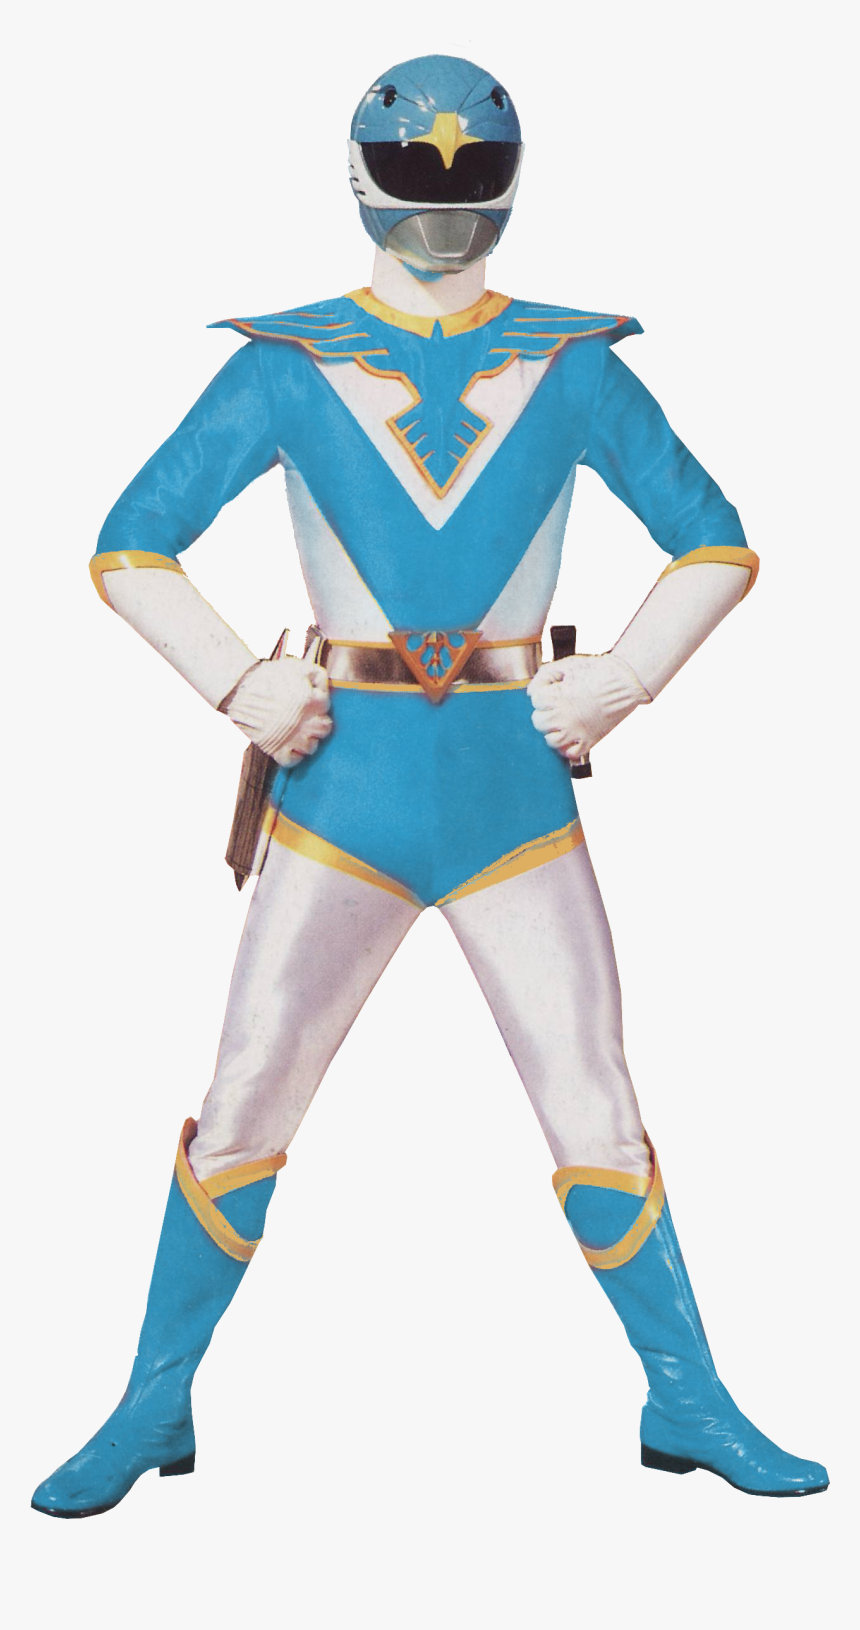 Blue Swallow Ranger Sportacus Lazy Town Characters Hd Png Download Is Free Transparent Png Image Download And U Lazy Town Characters Lazy Town Blue Swallow